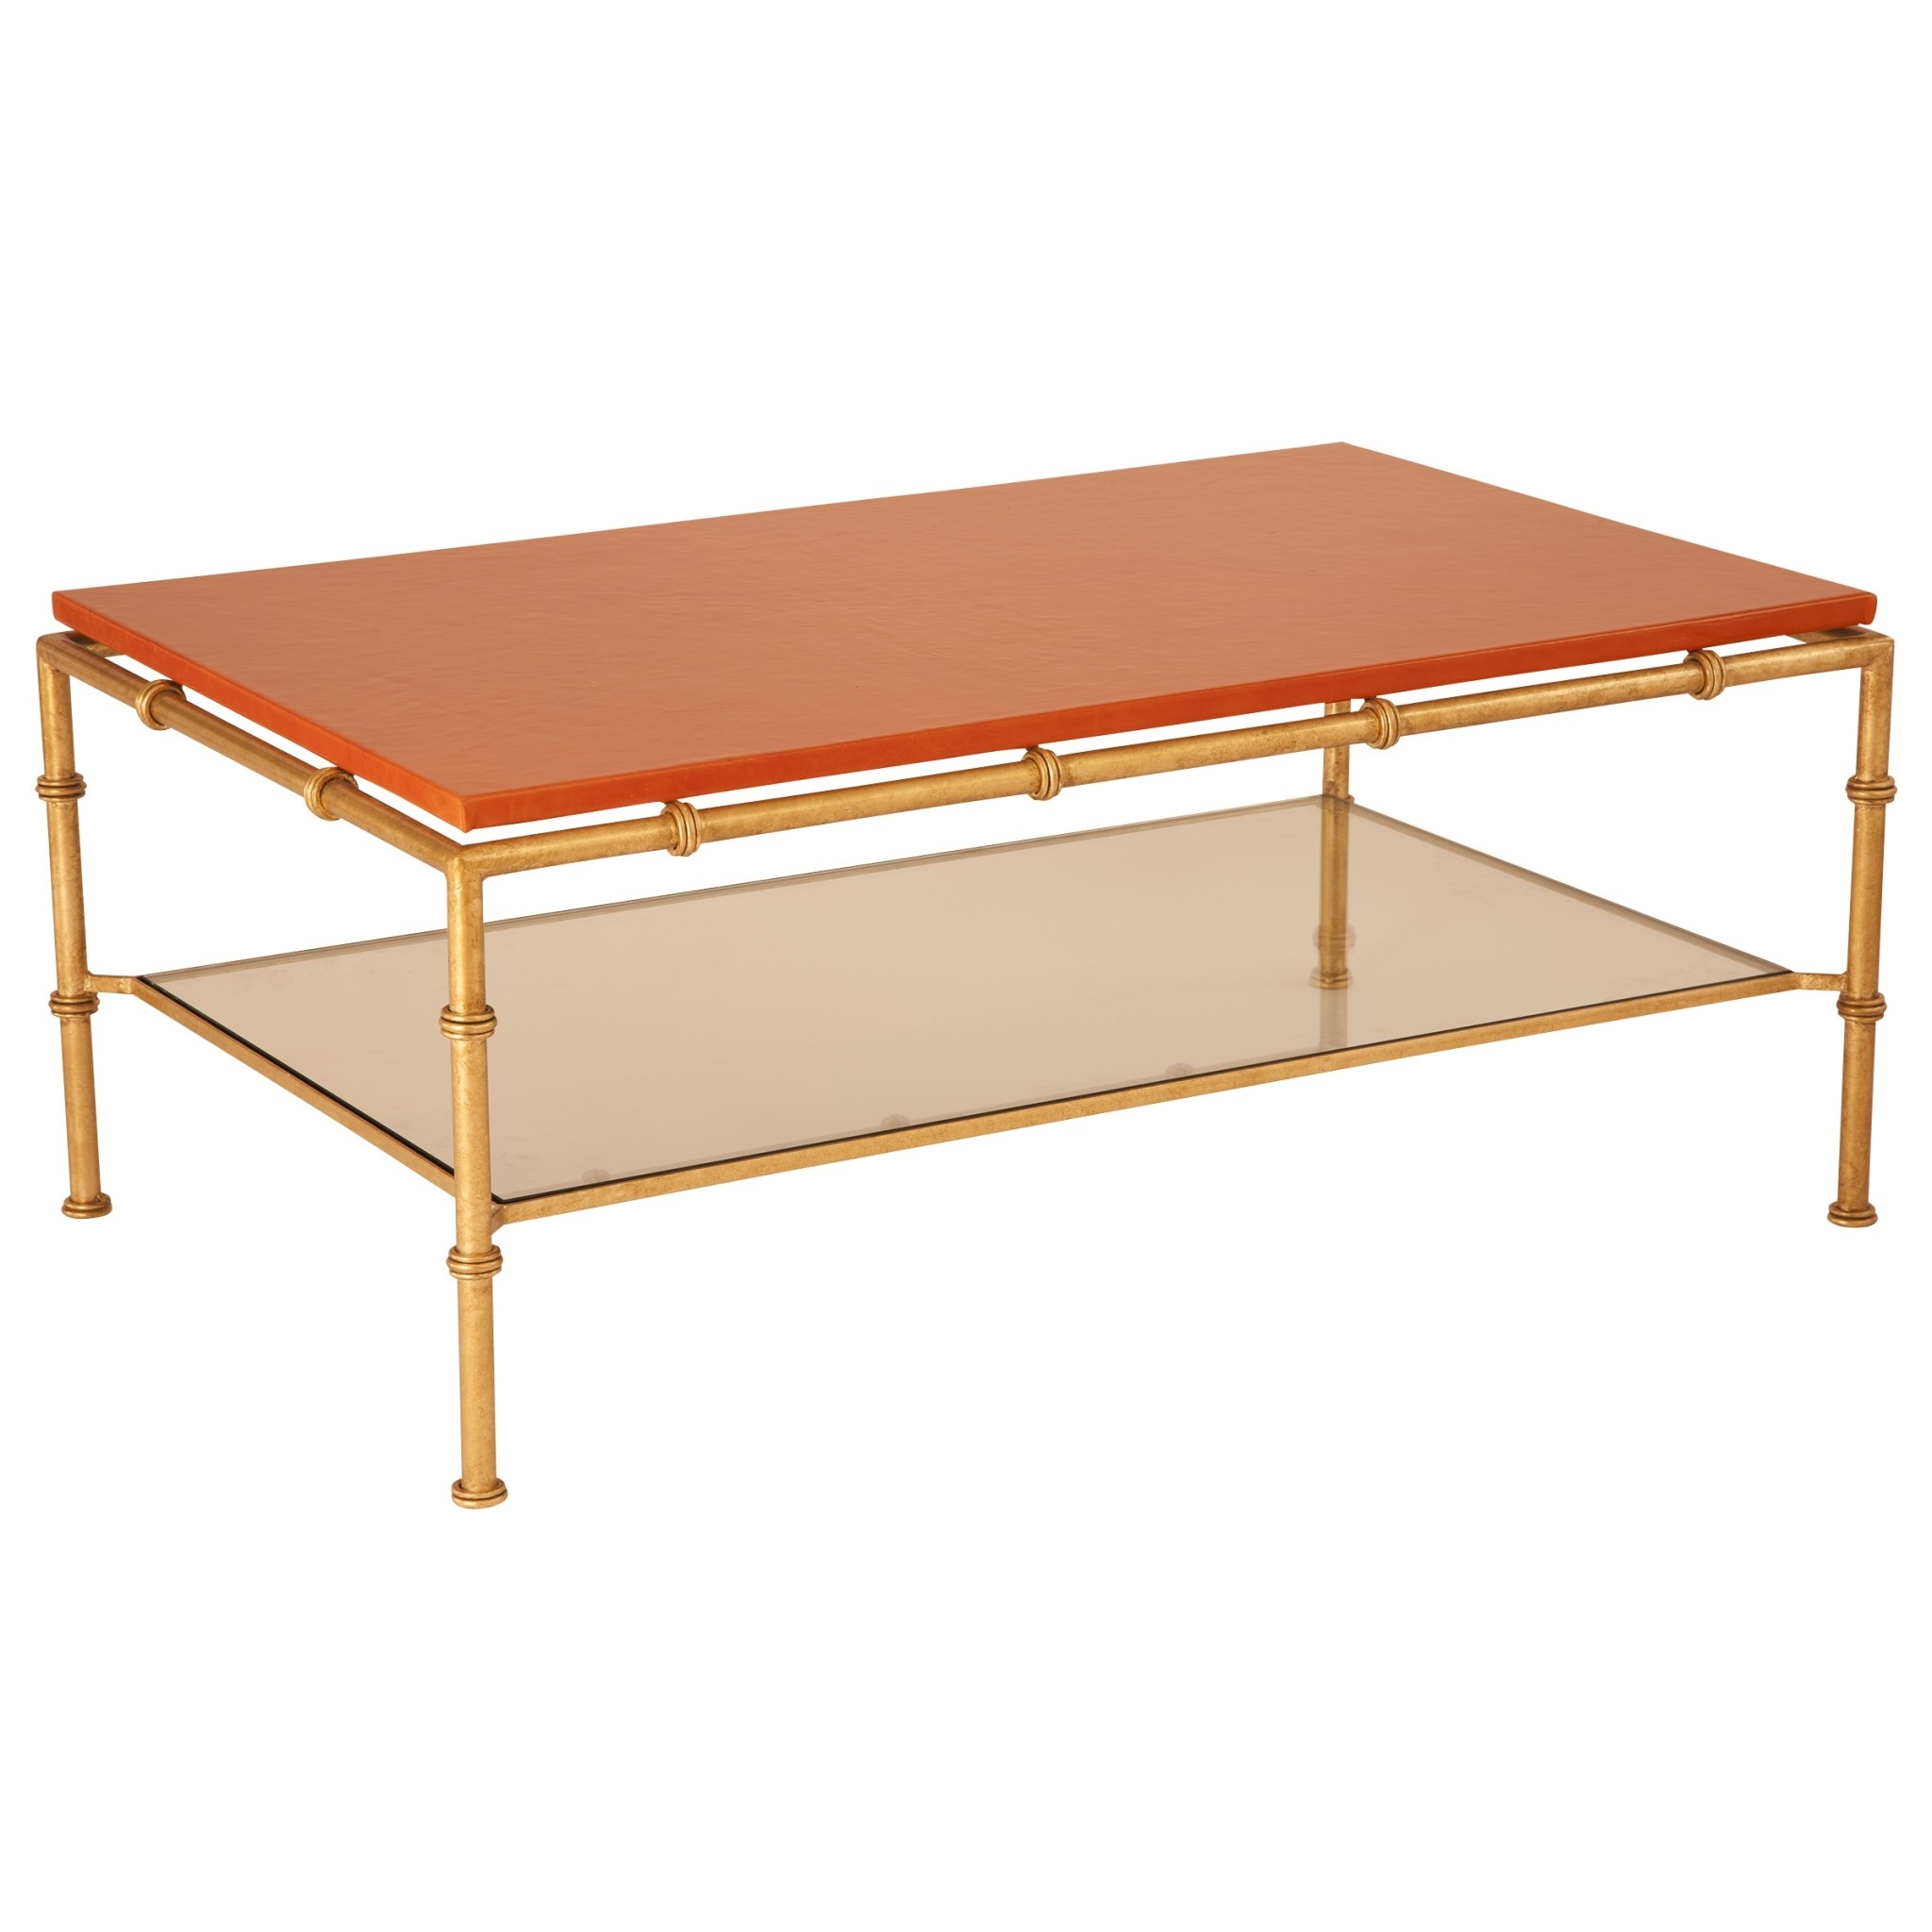 Diva Coffee Table | Niermann Weeks within Gold Leaf Collection Coffee Tables (Image 9 of 30)